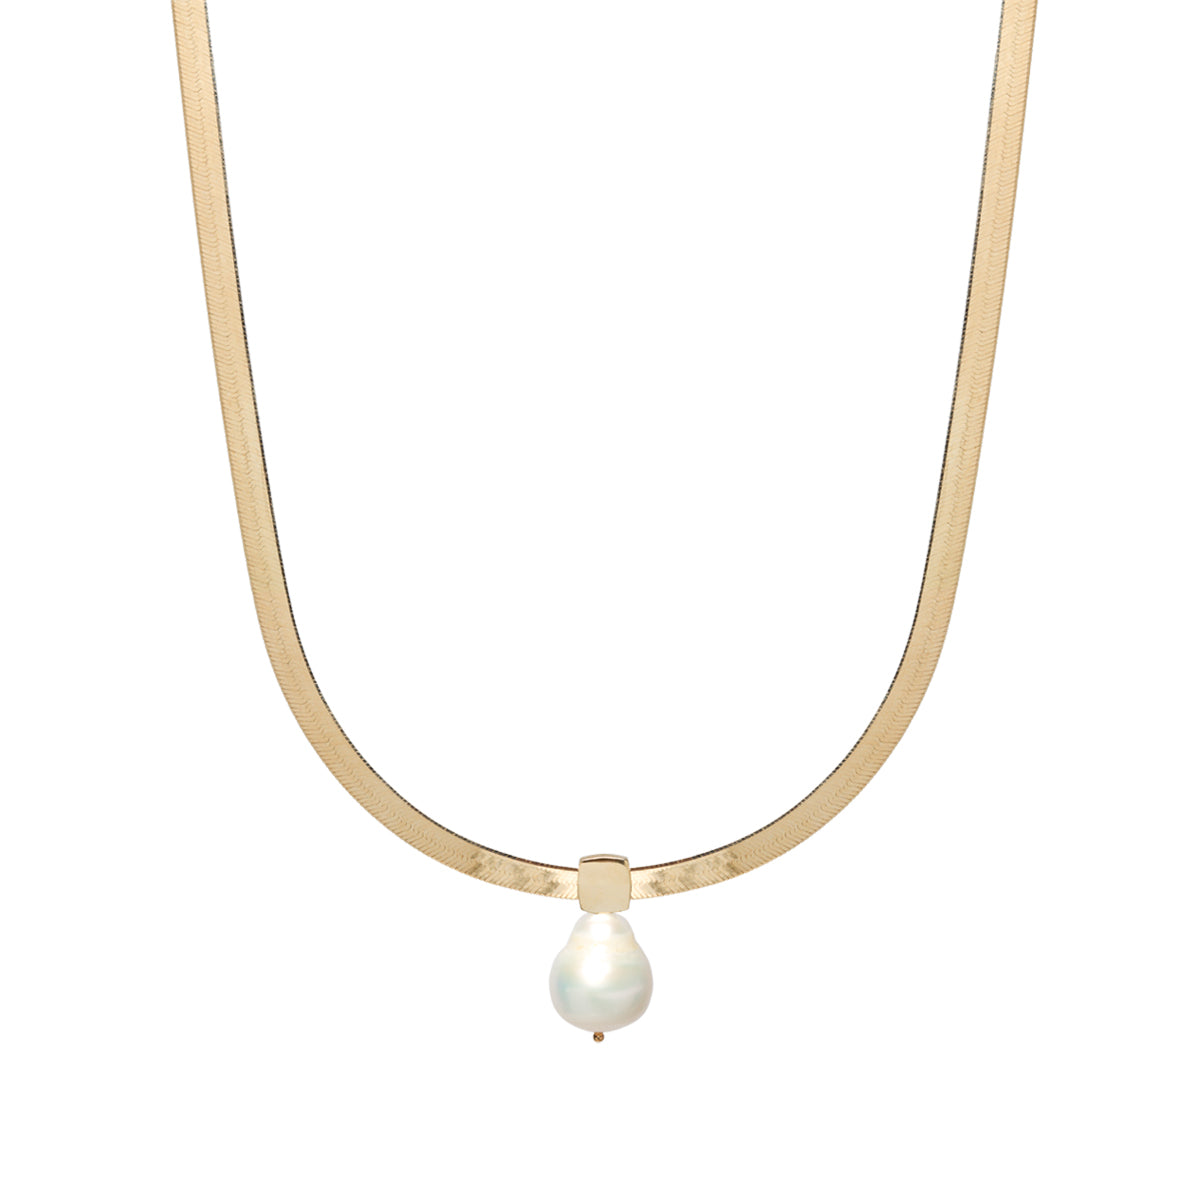 14k gold herringbone chain necklace with baroque pearl slide